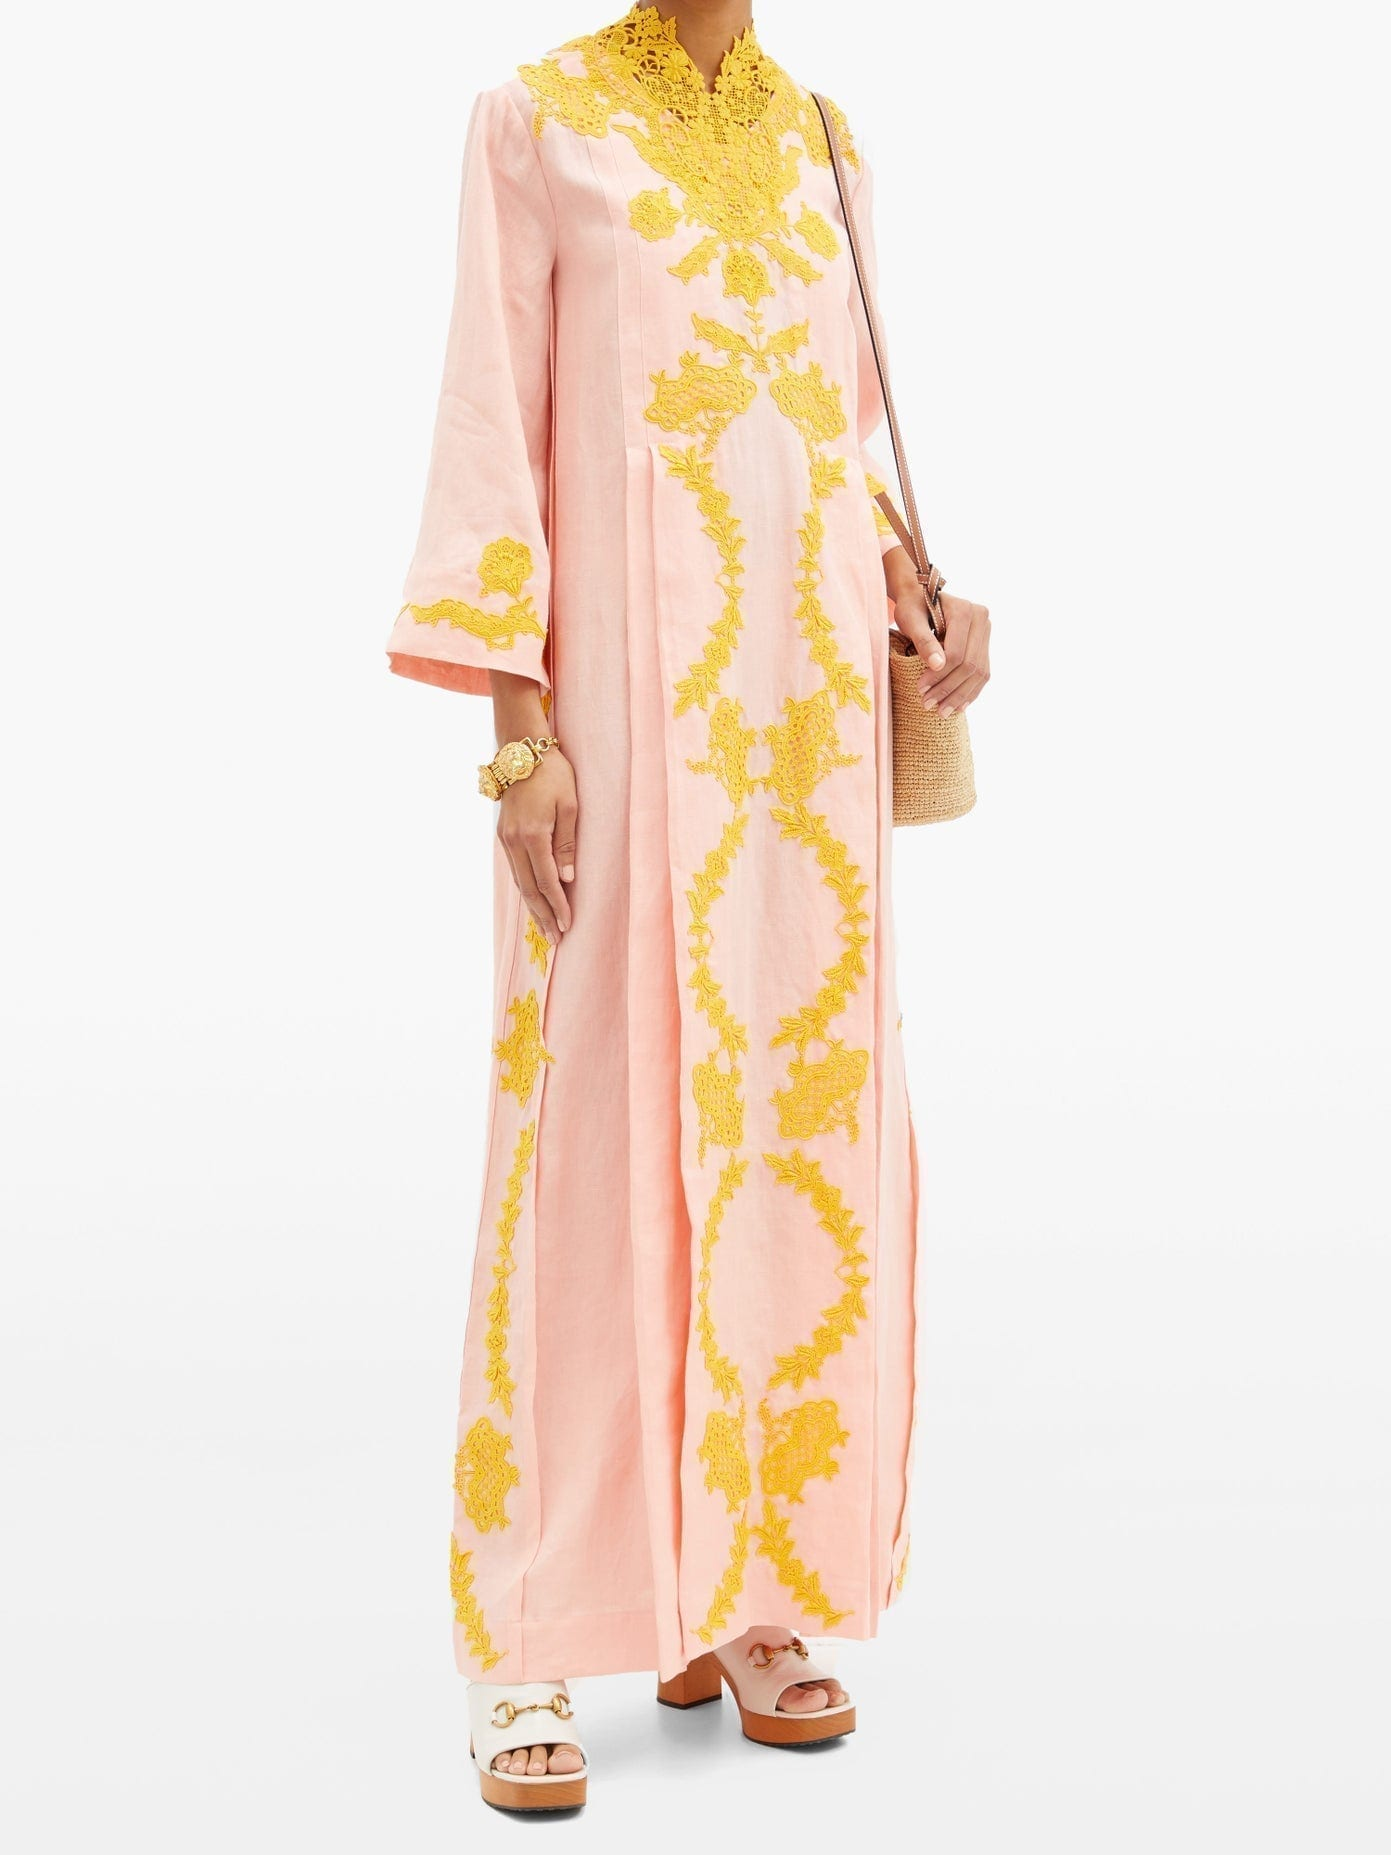 GUCCI Floral Lace-appliqué Linen Kaftan Dress